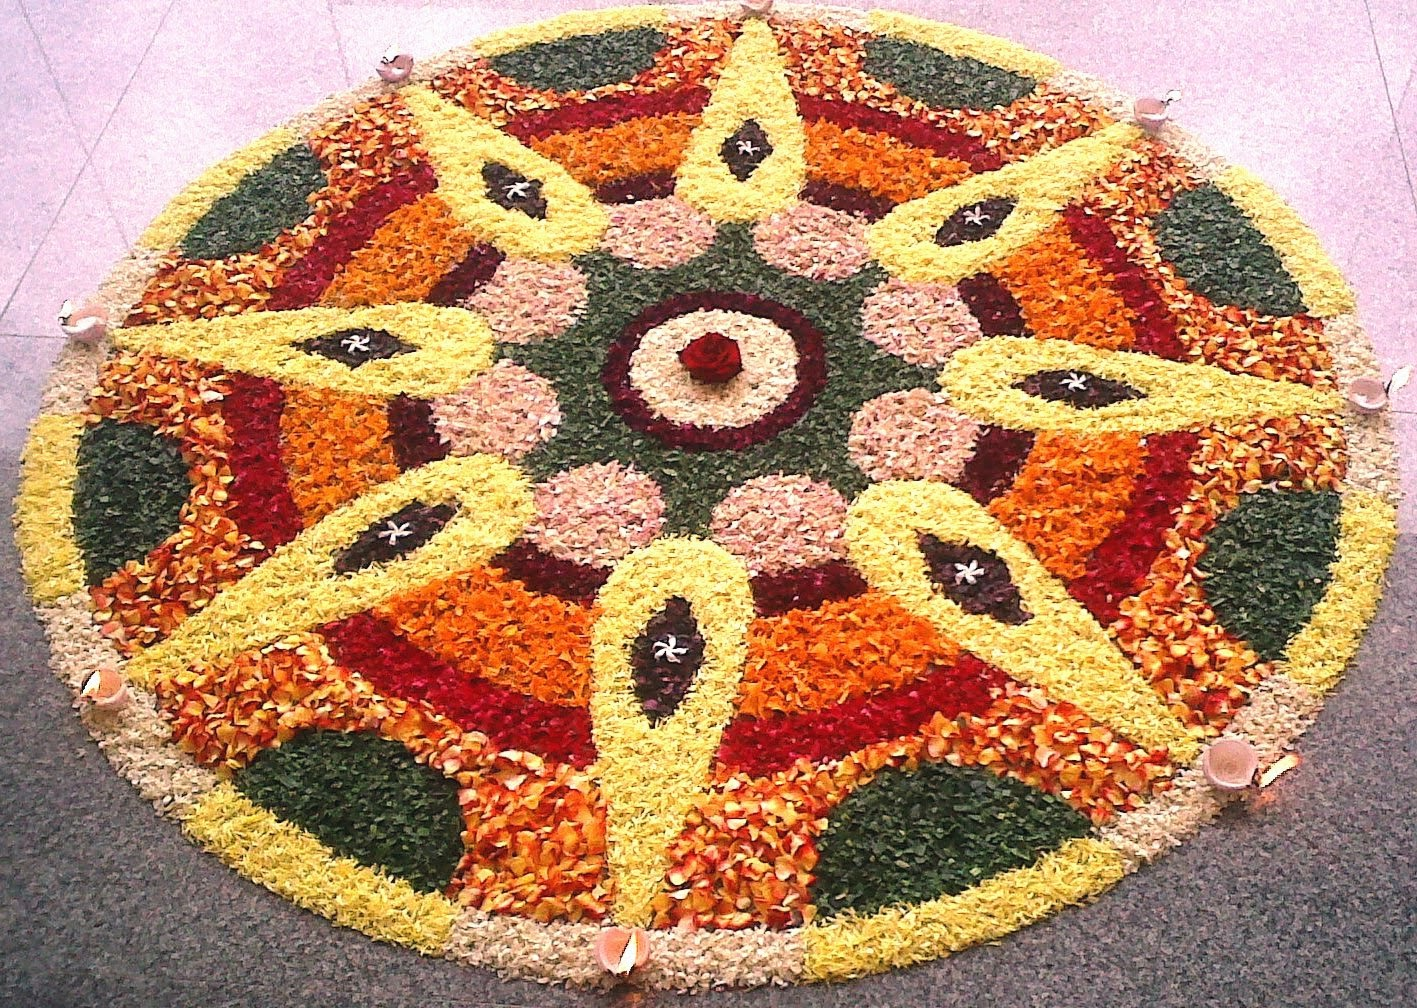 Rangoli Designs For Competition With Concepts 6} rangoli designs with